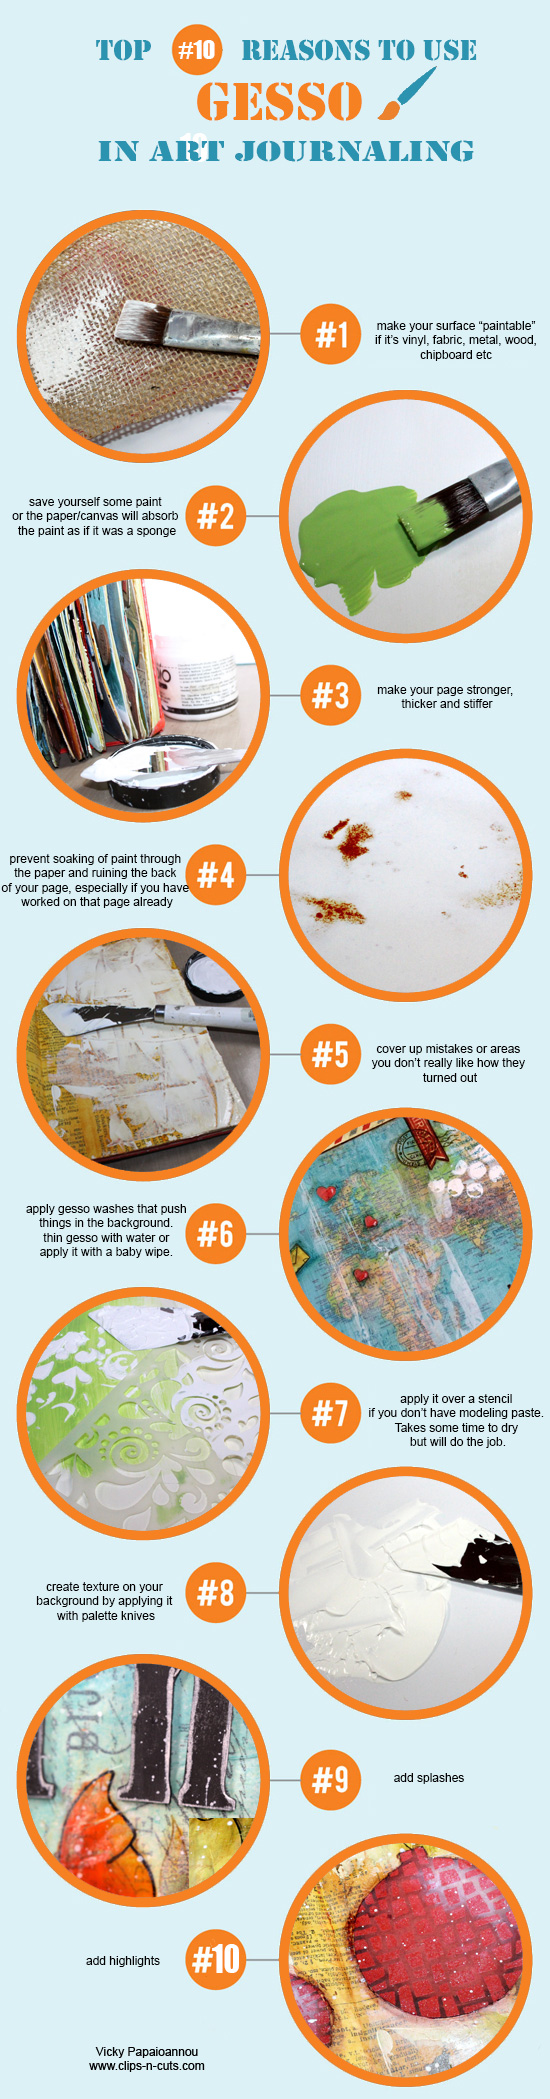 10 reasons to use gesso